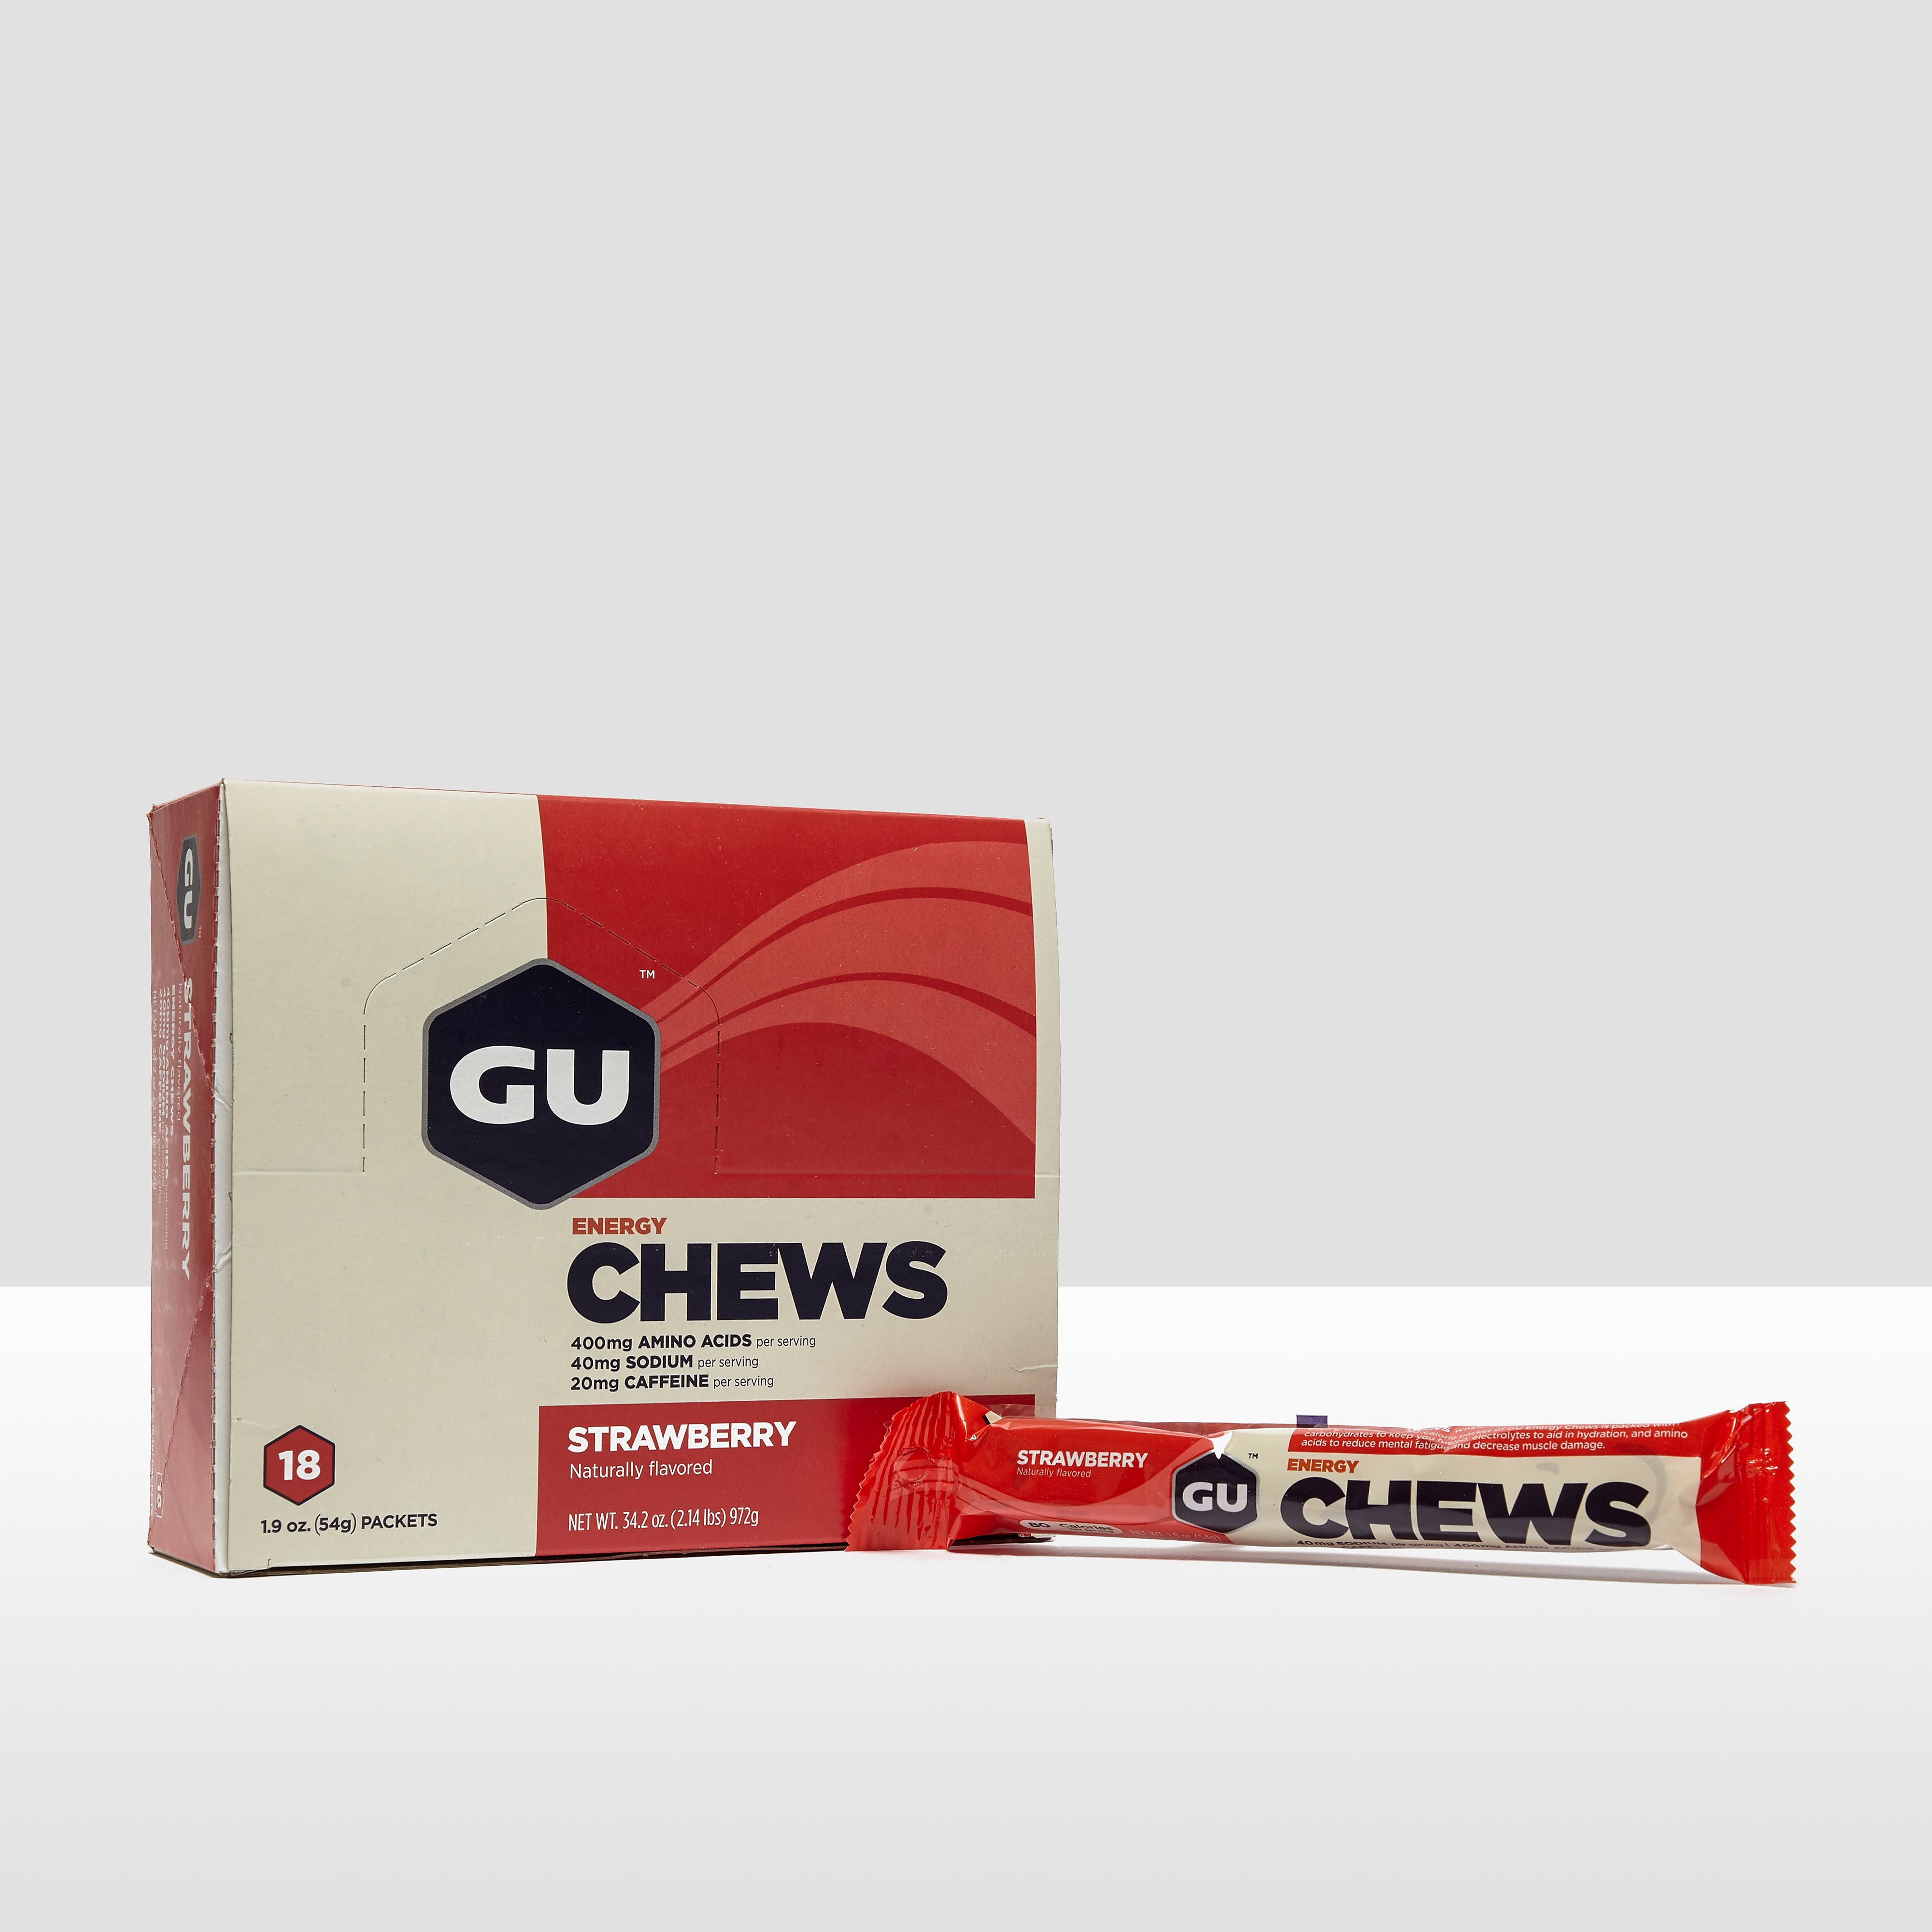 GU Energy Chews (18 Pack) - Strawberry